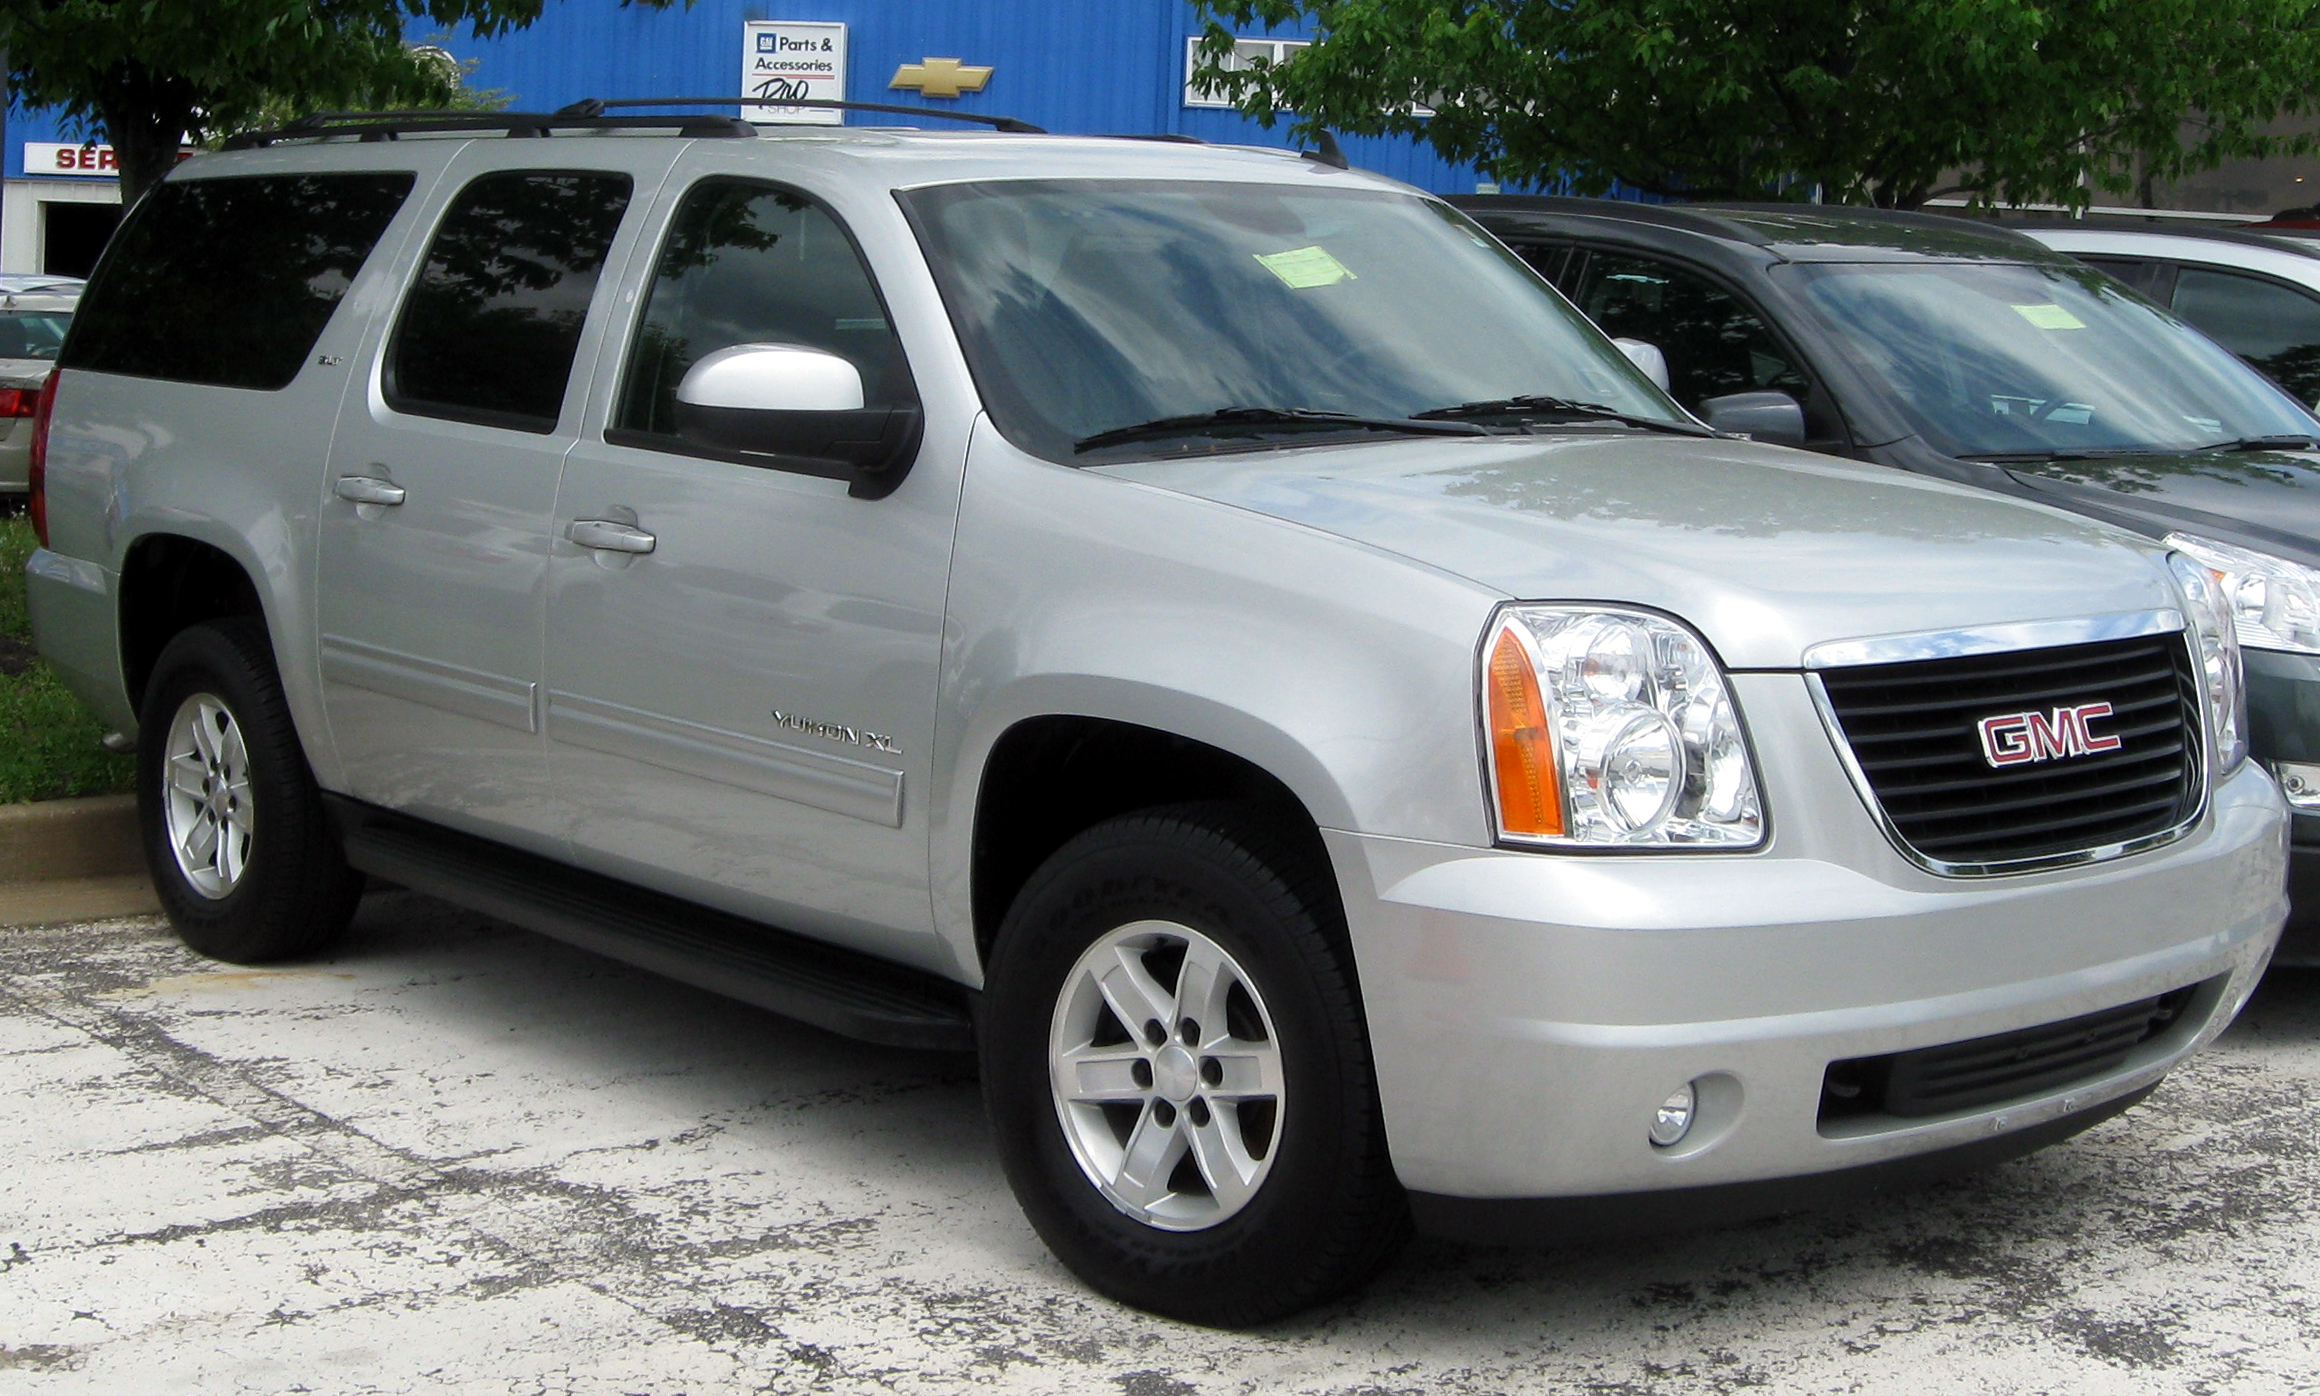 2006 gmc yukon xl photos informations articles bestcarmag 2006 gmc yukon xl 14 sciox Choice Image